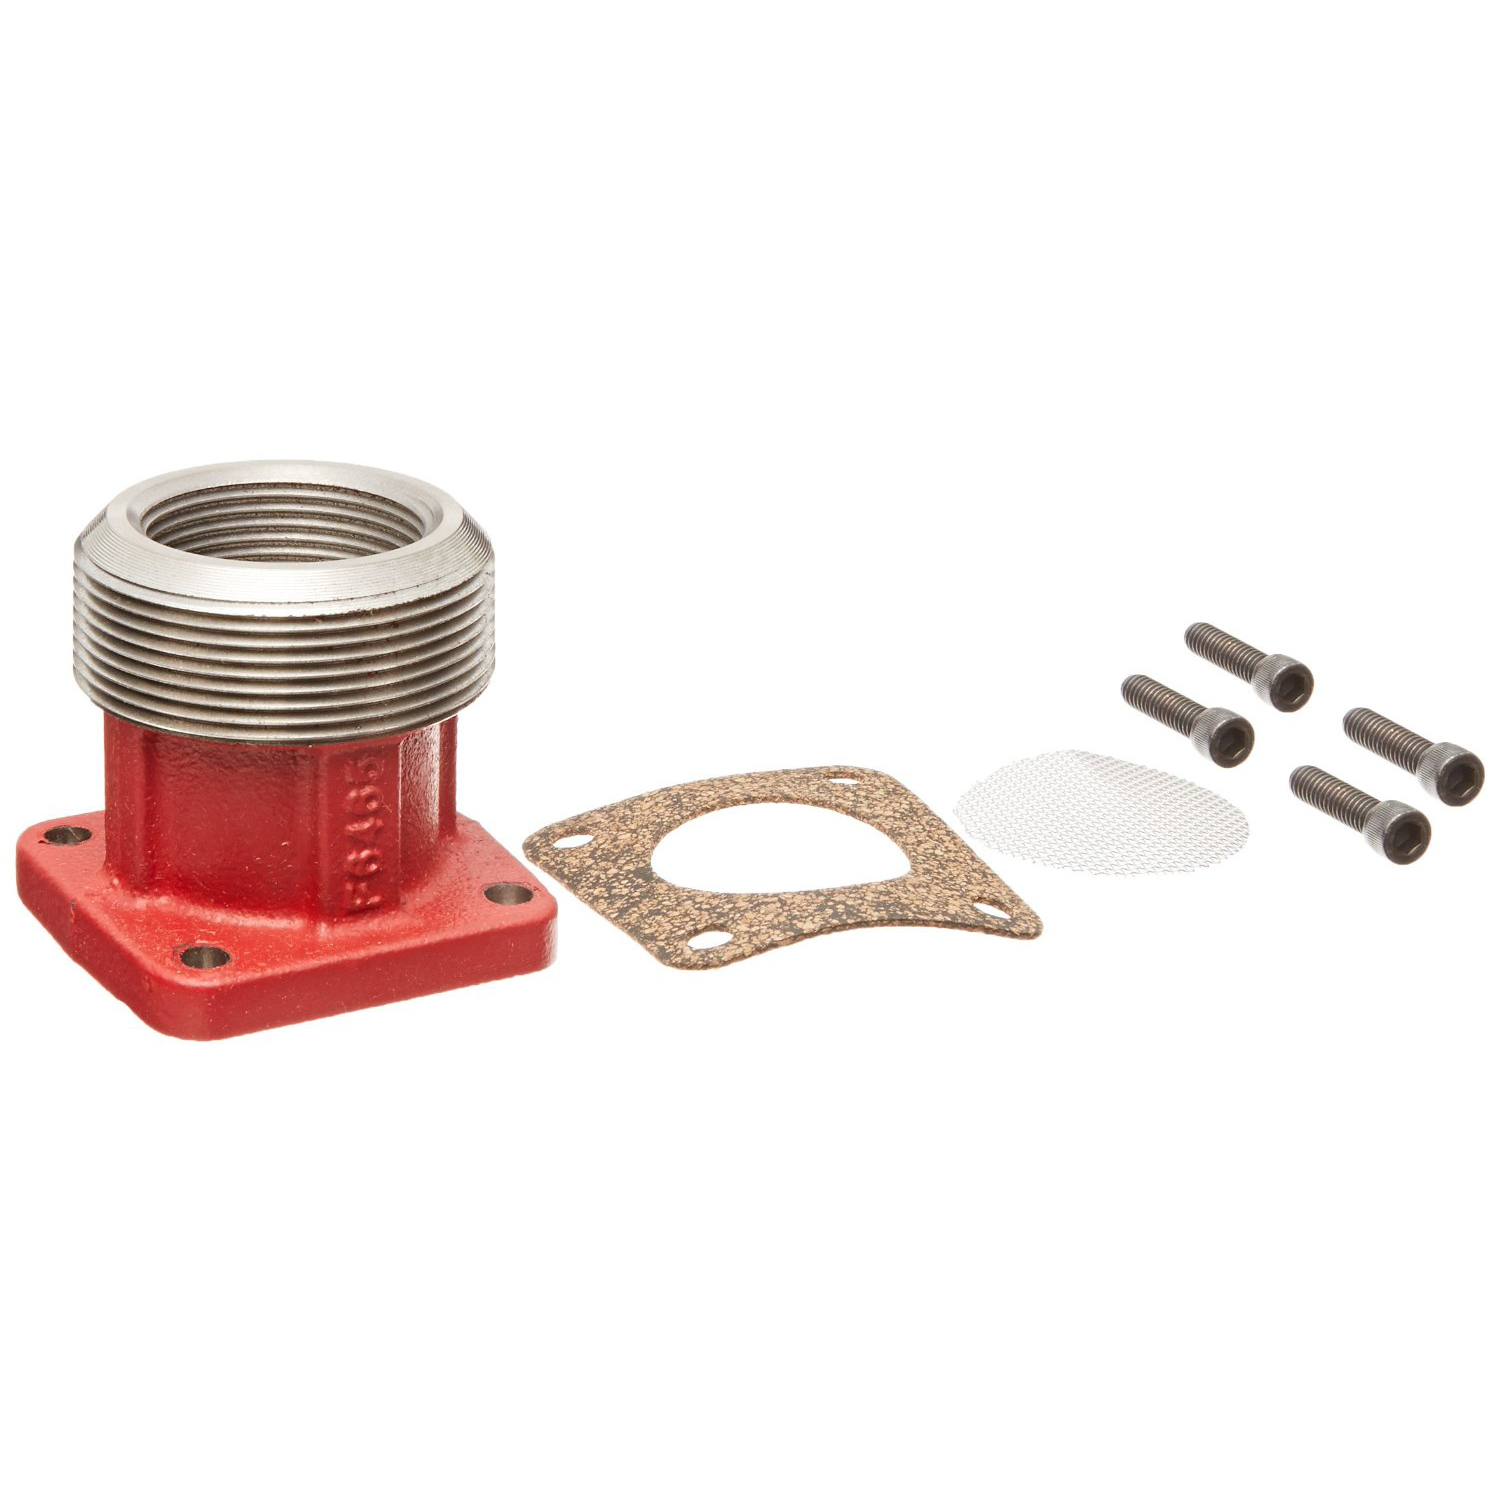 Fill-Rite KIT152HA Replacement Handle Grip Lock Nut Bolt and Links Kit